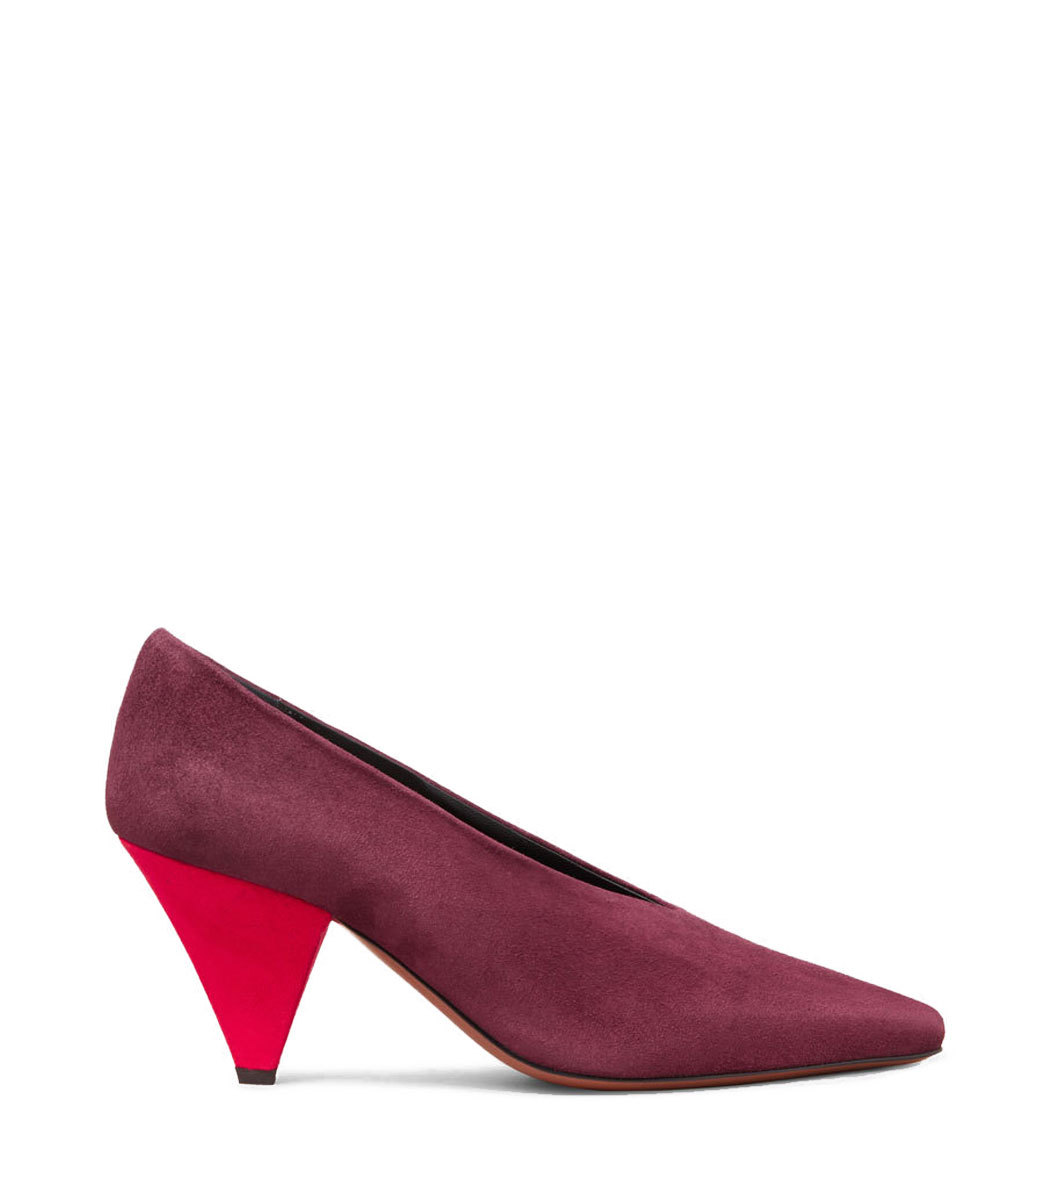 Aunty Suede Pumps Neous For Cheap For Sale Cheap Shop Offer BqoG4IKye